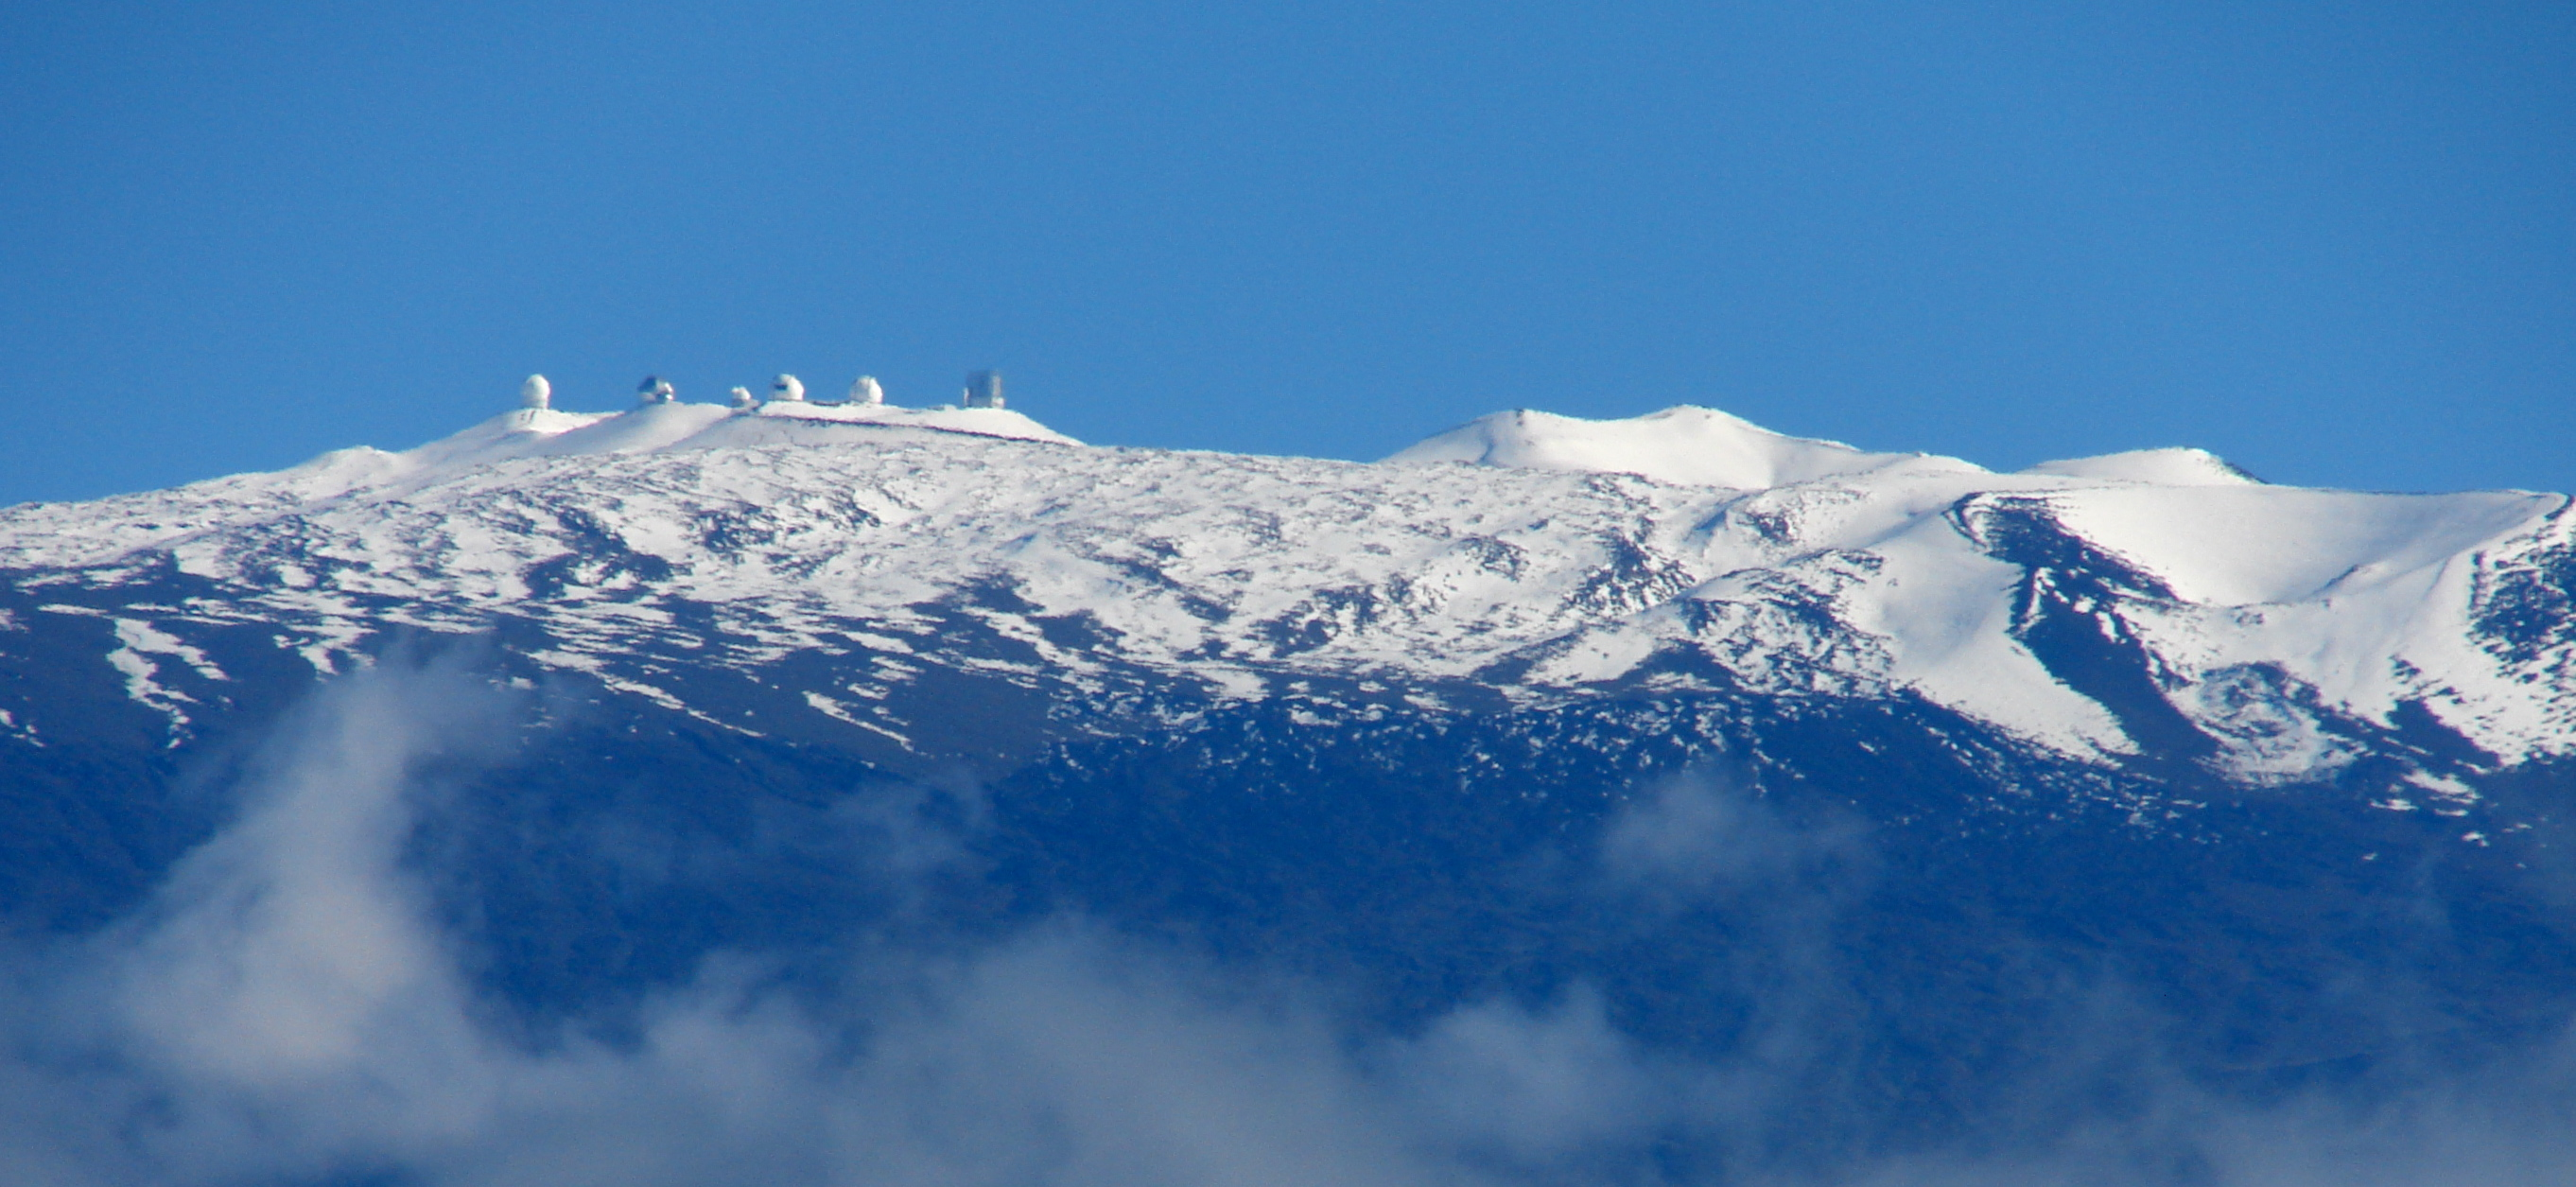 Hawaii mountains mauna kea webcam